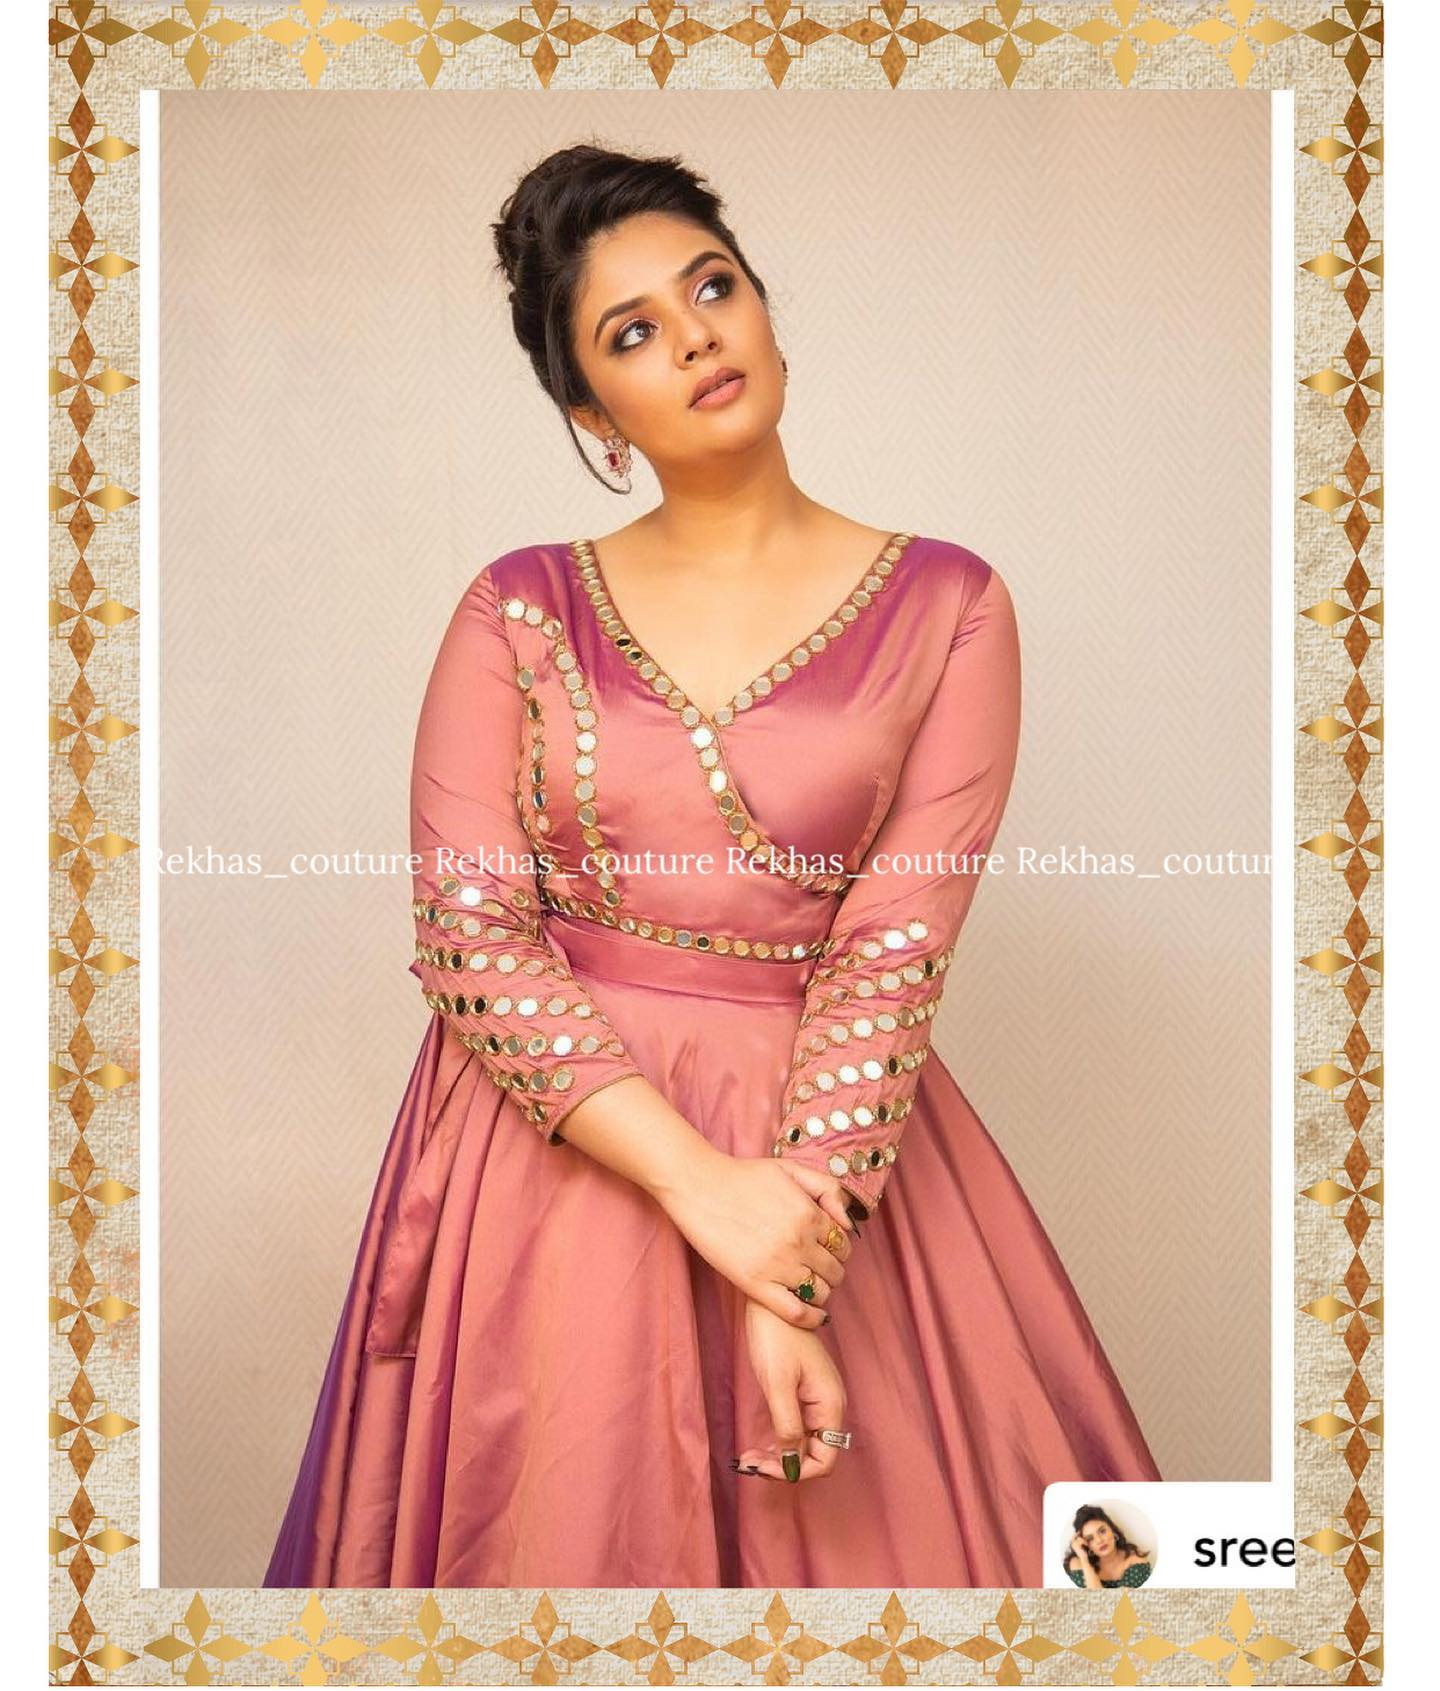 Gorgeous actress Sreemukhi in mirror work floor length dress by Rekhas house of coutures. 2021-09-11